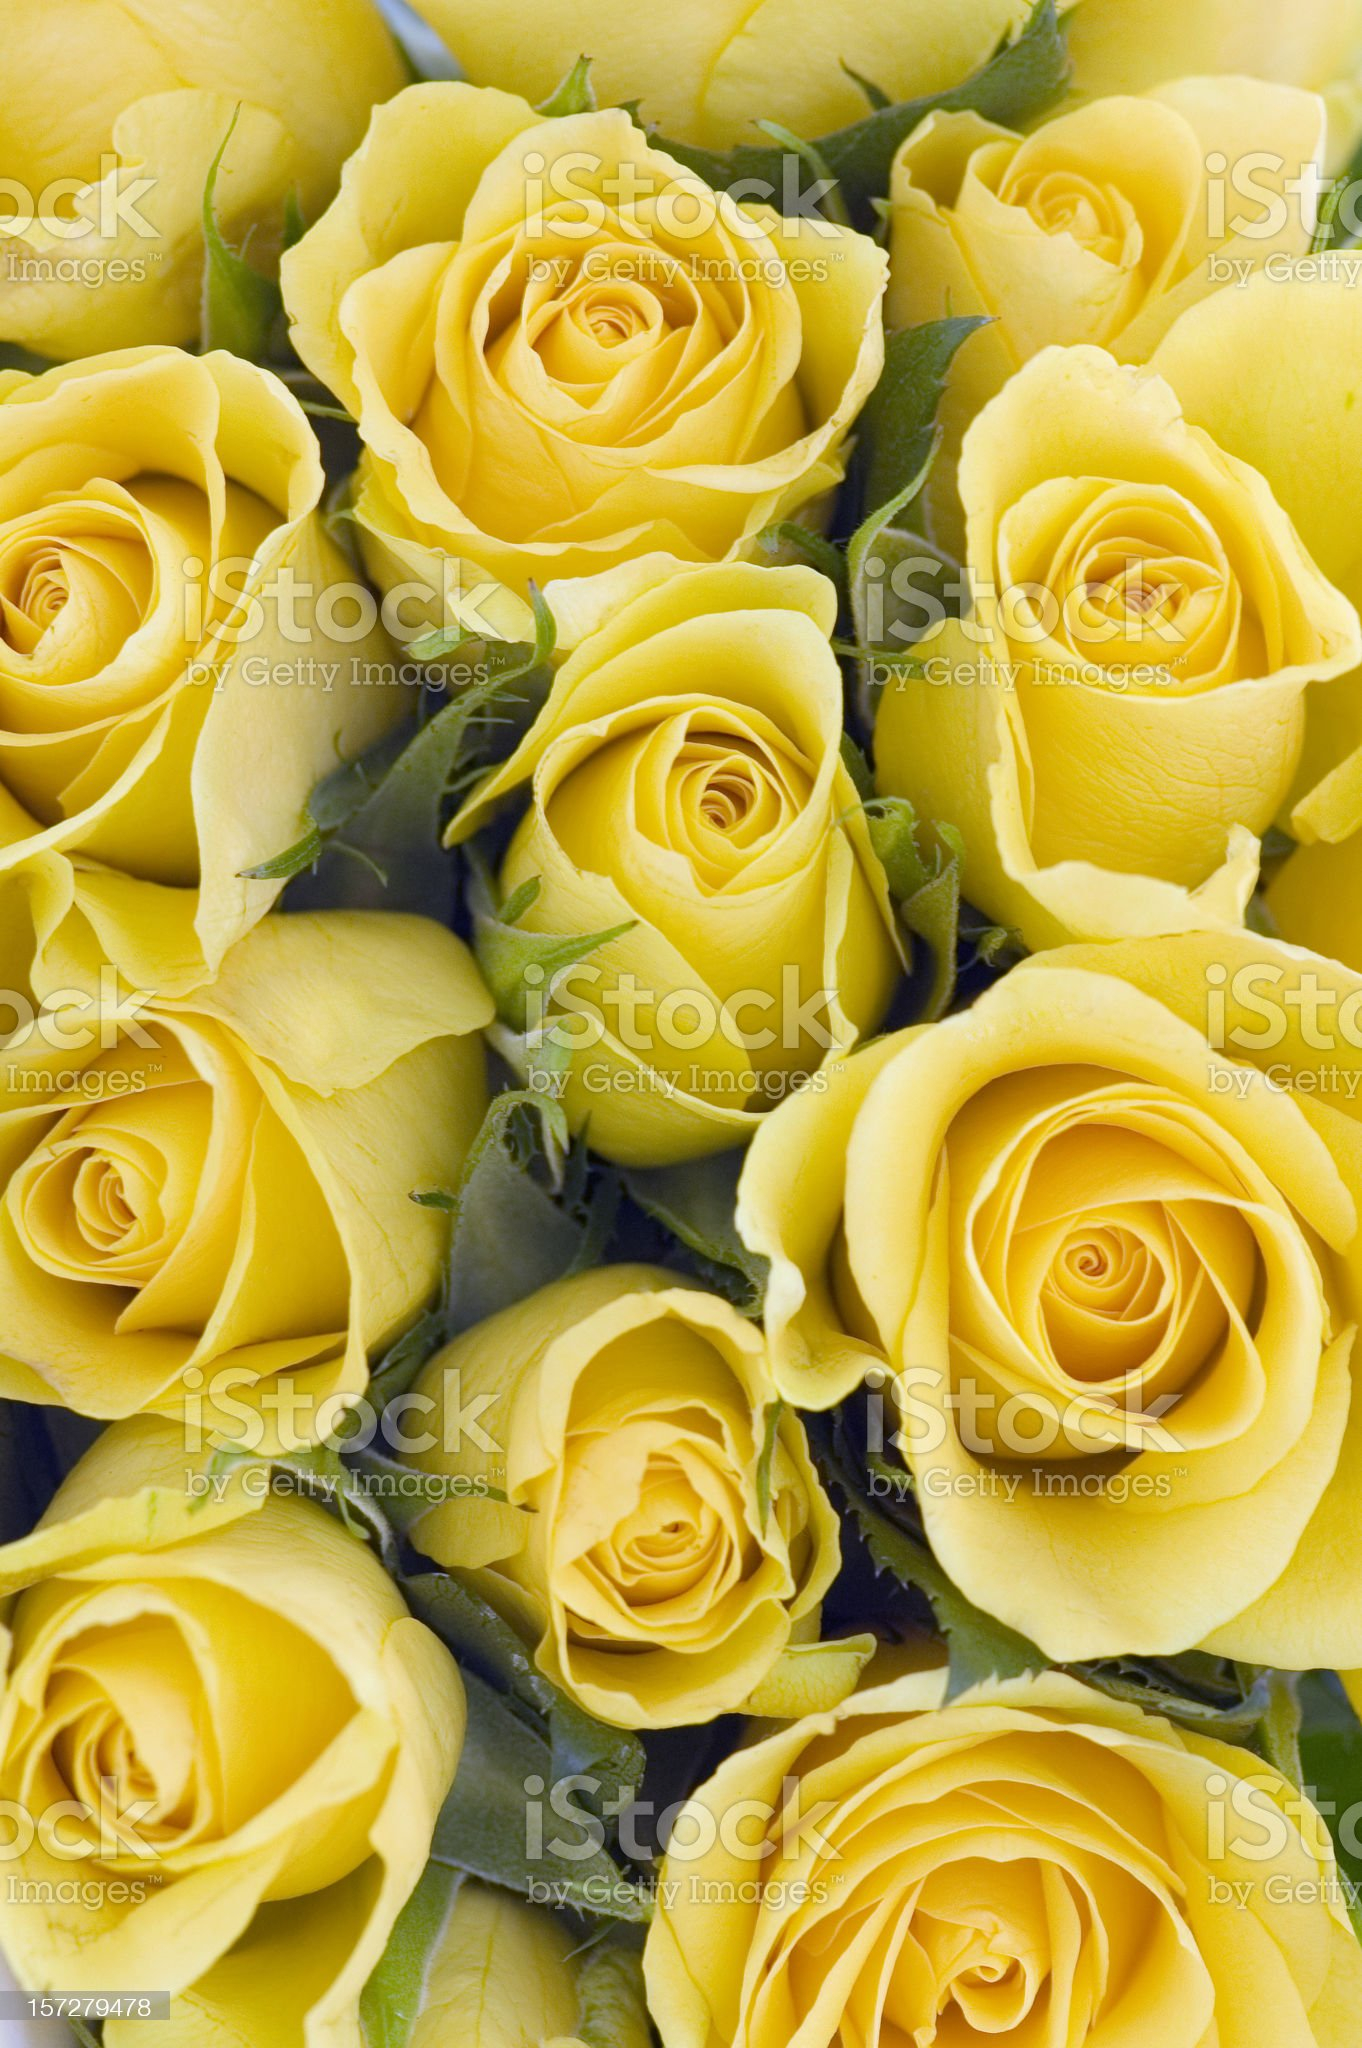 Background of yellow Roses royalty-free stock photo